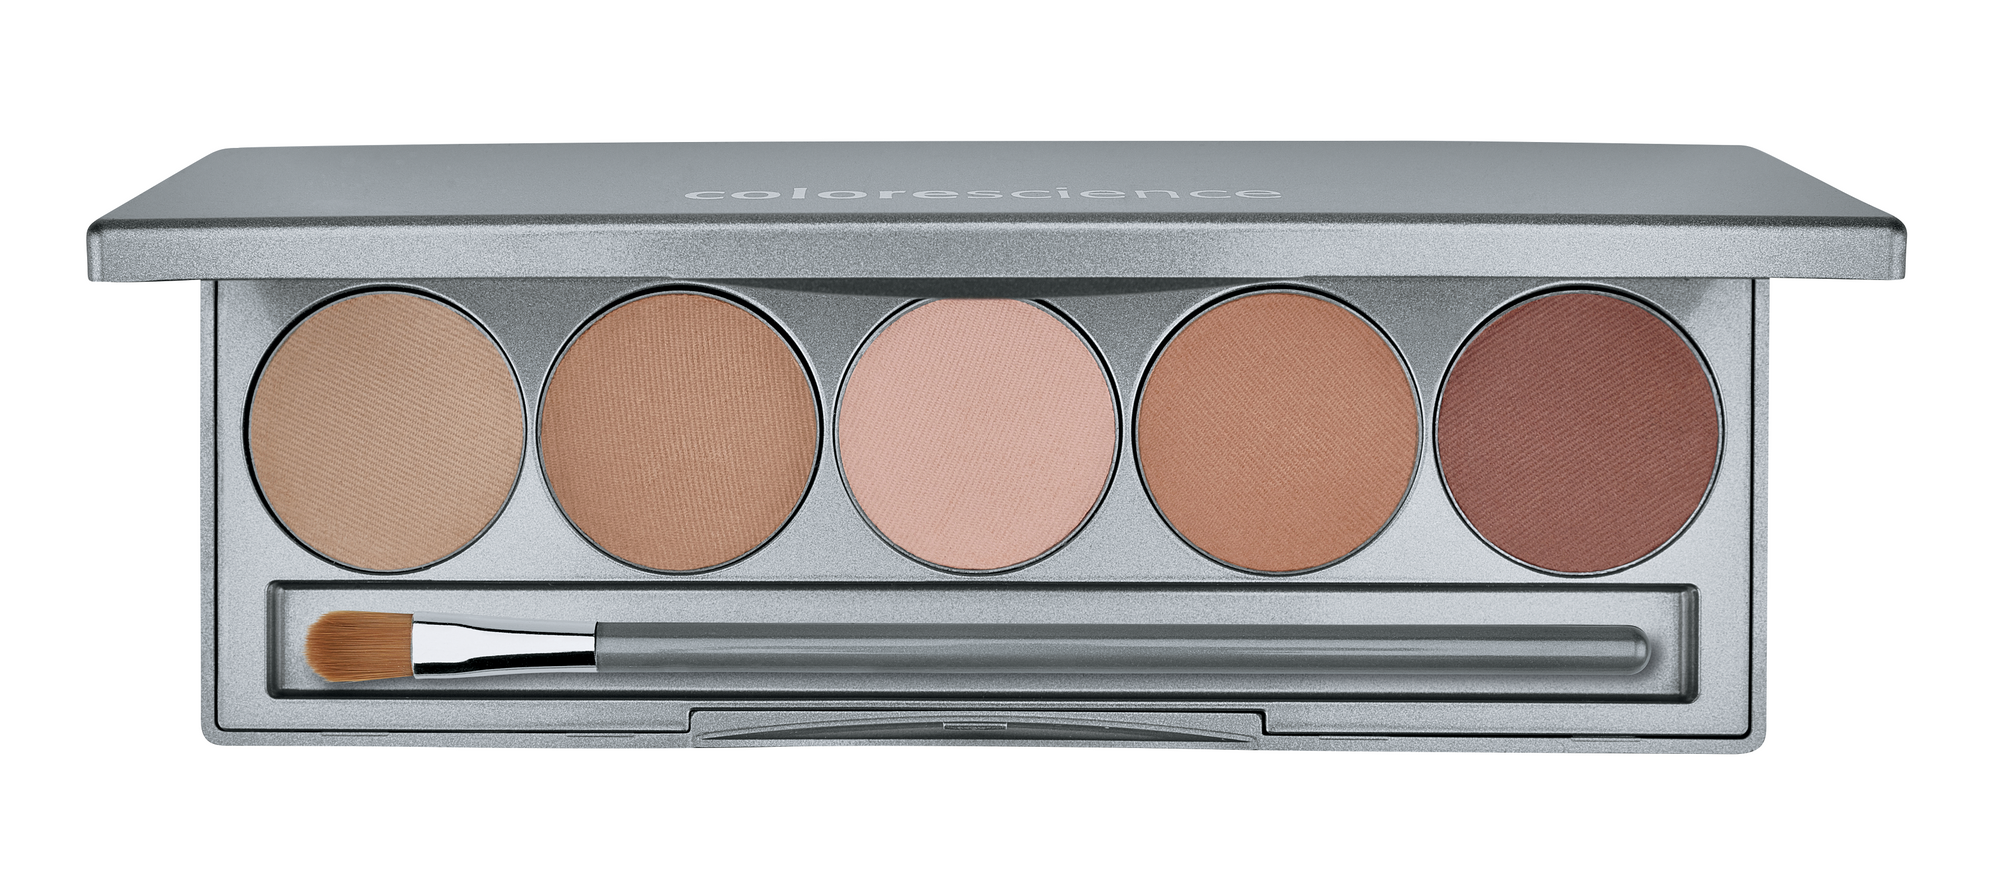 ColoreScience Pressed Mineral Corrector Palette SPF 20